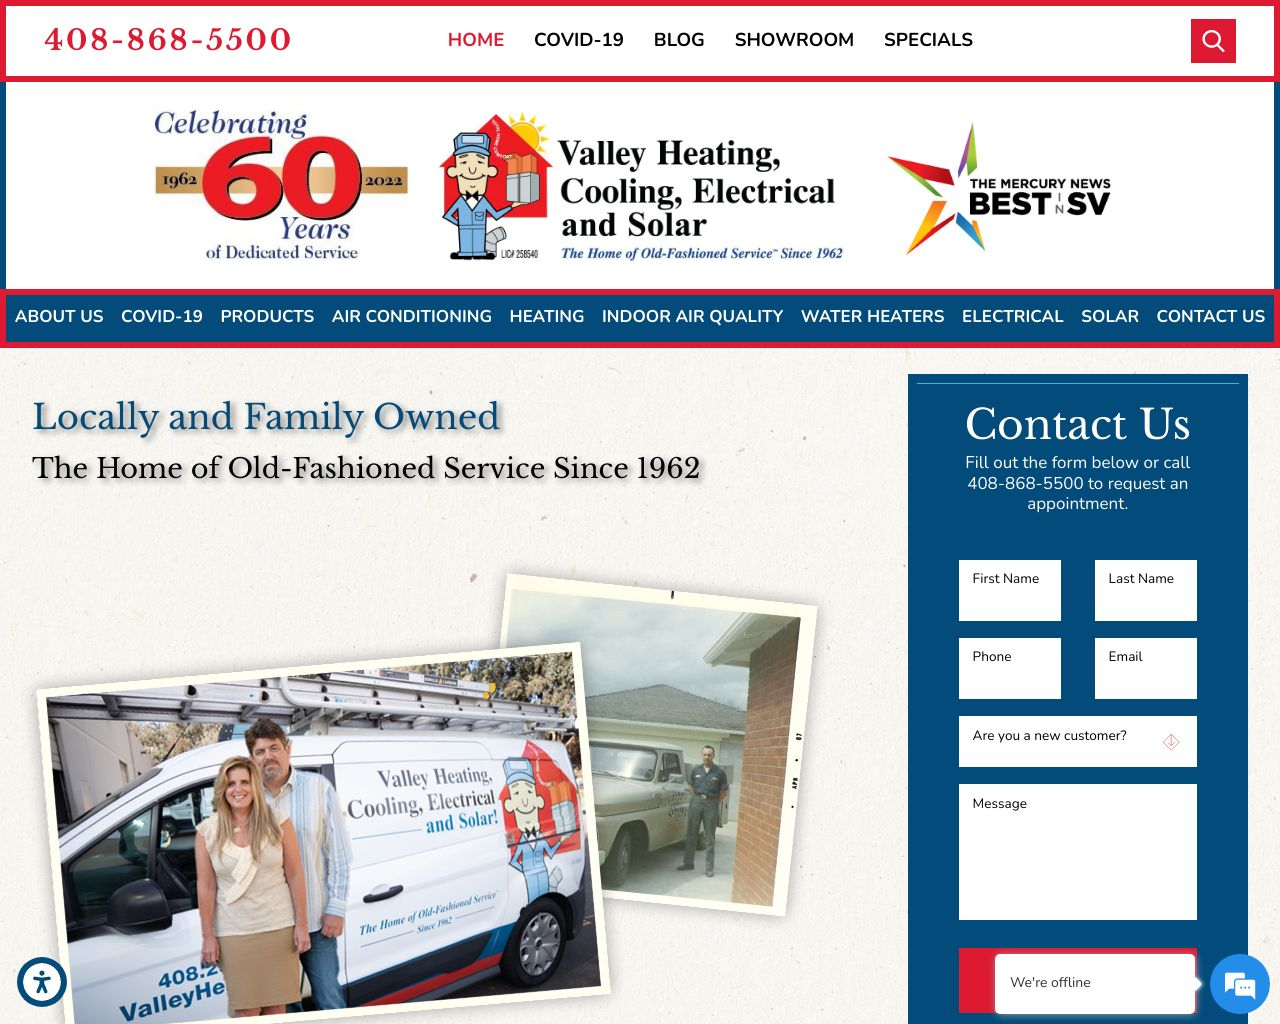 Valley Heating Cooling And Electrical Diamond Certified Breaker Box Wiring 2 10 From 11 Votes 9 18 Http Valleyheatingcom